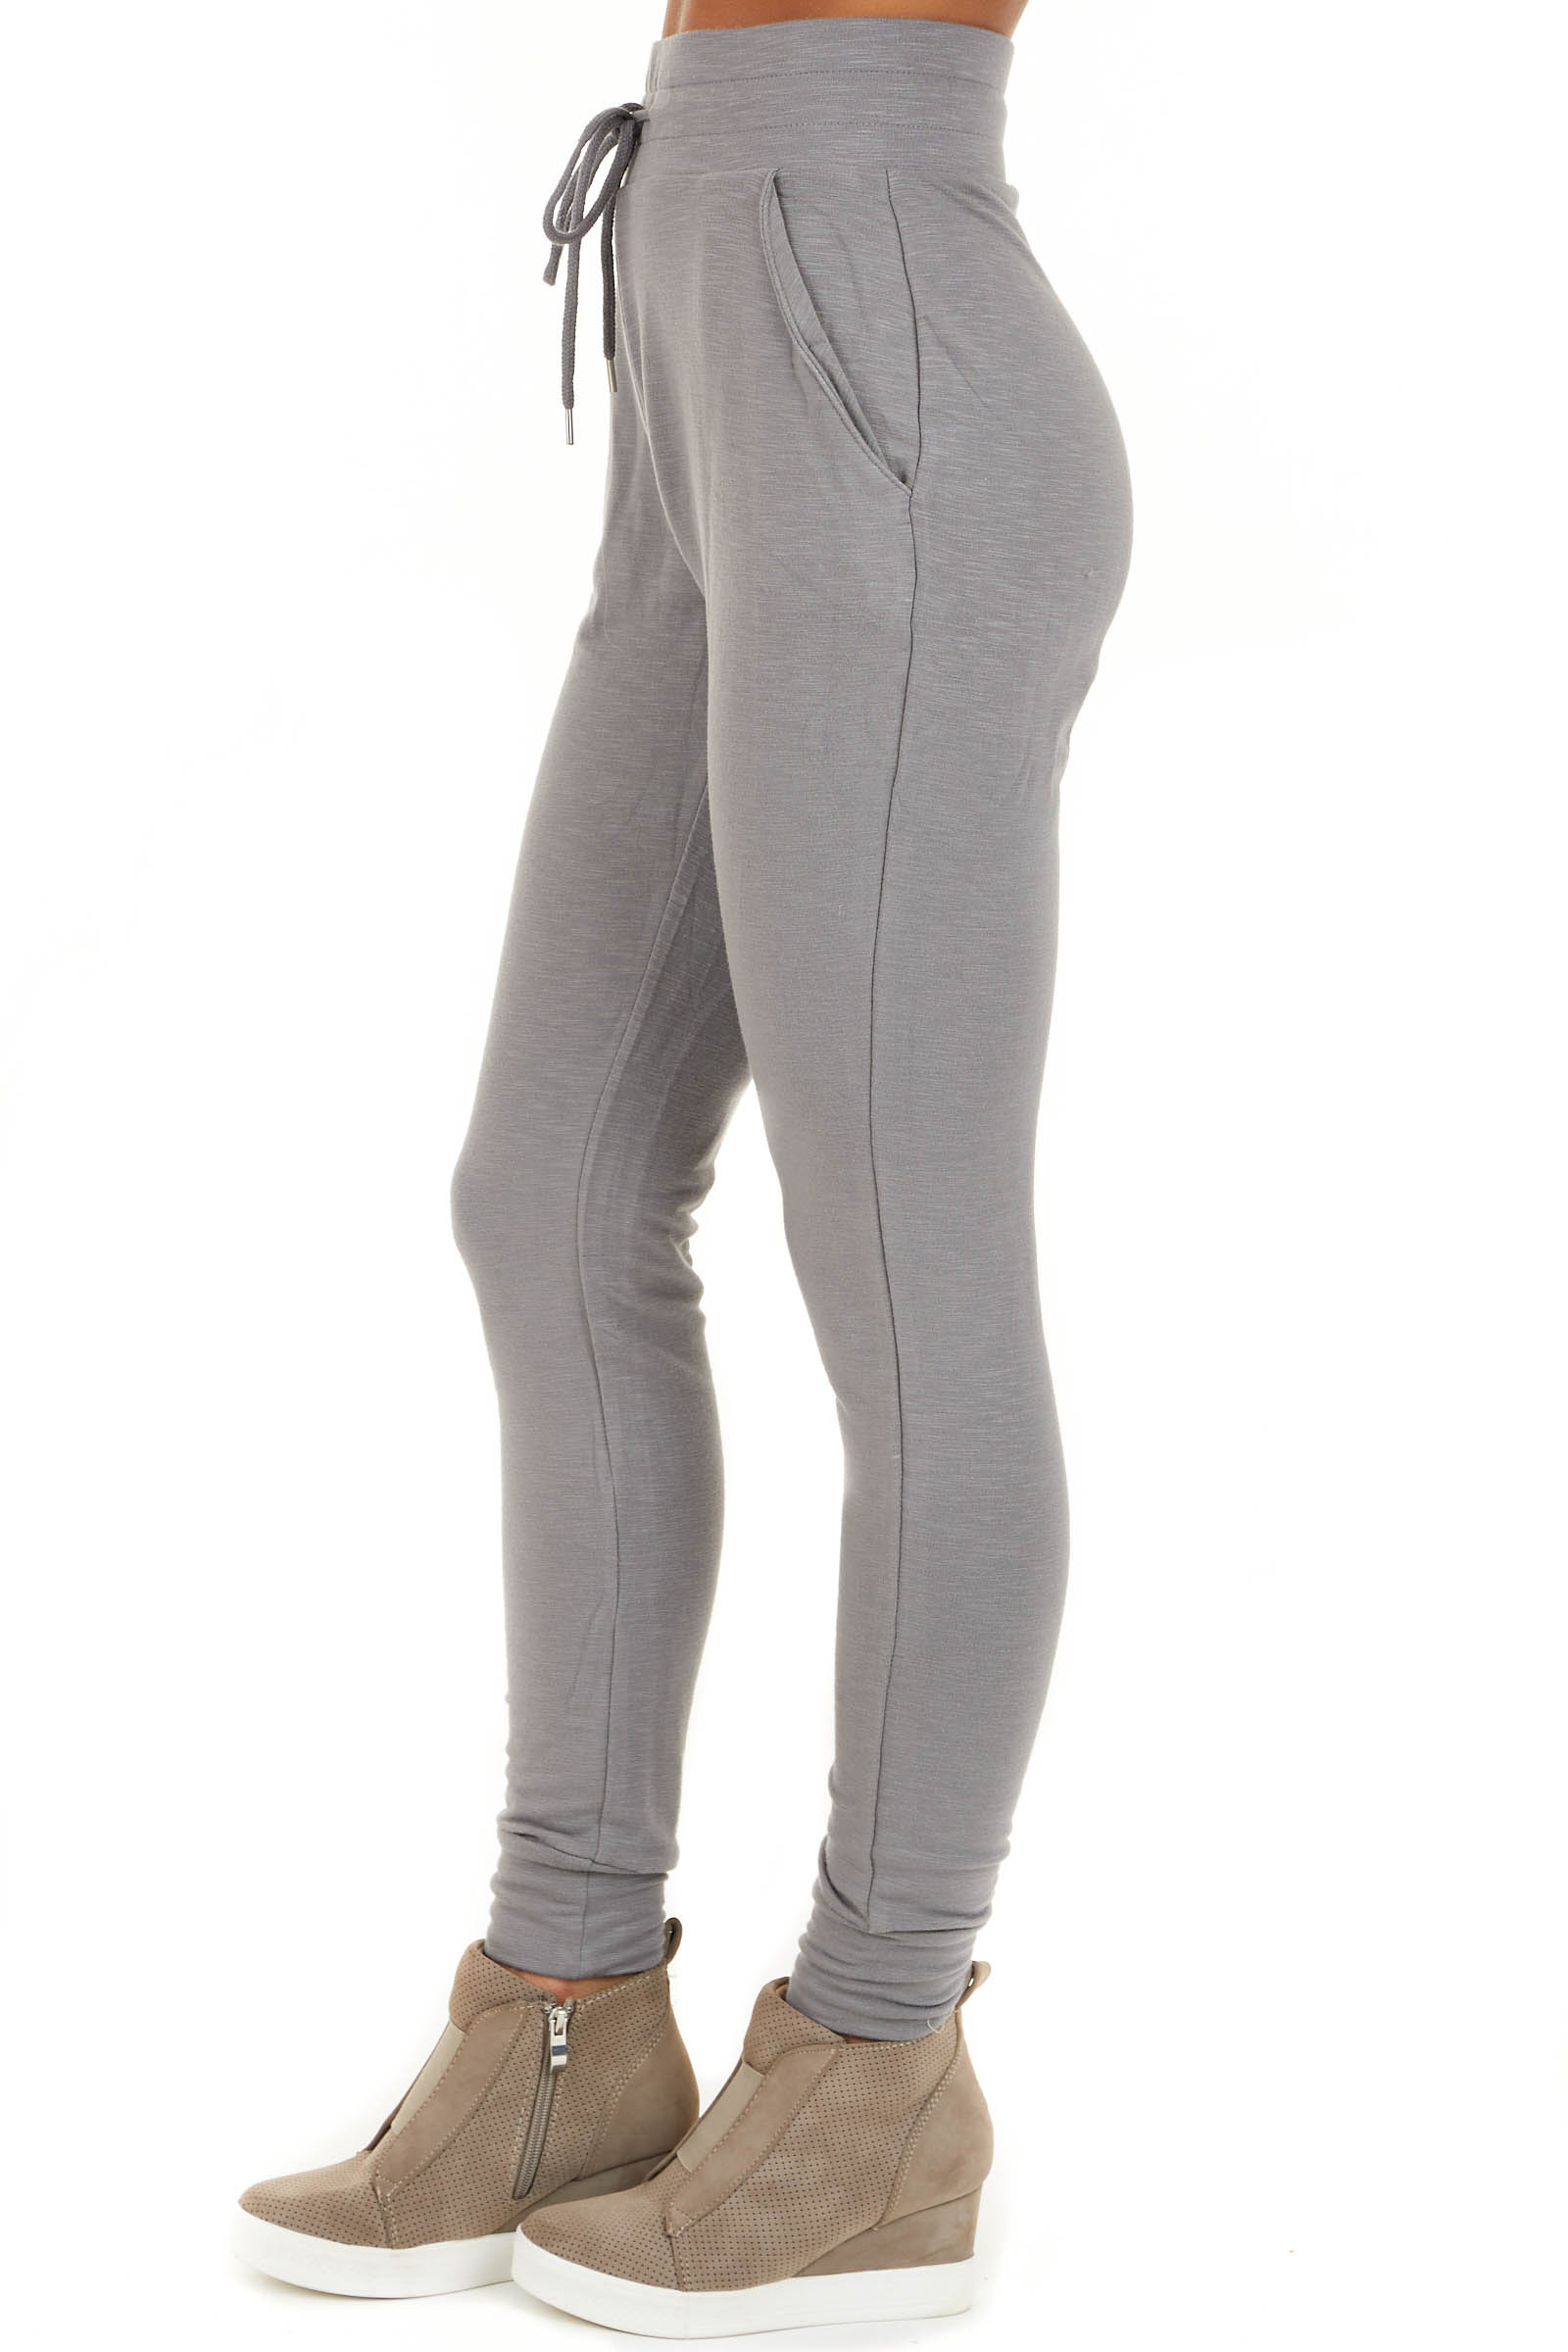 Heather Grey Joggers with Front Pockets and Drawstring Waist side view